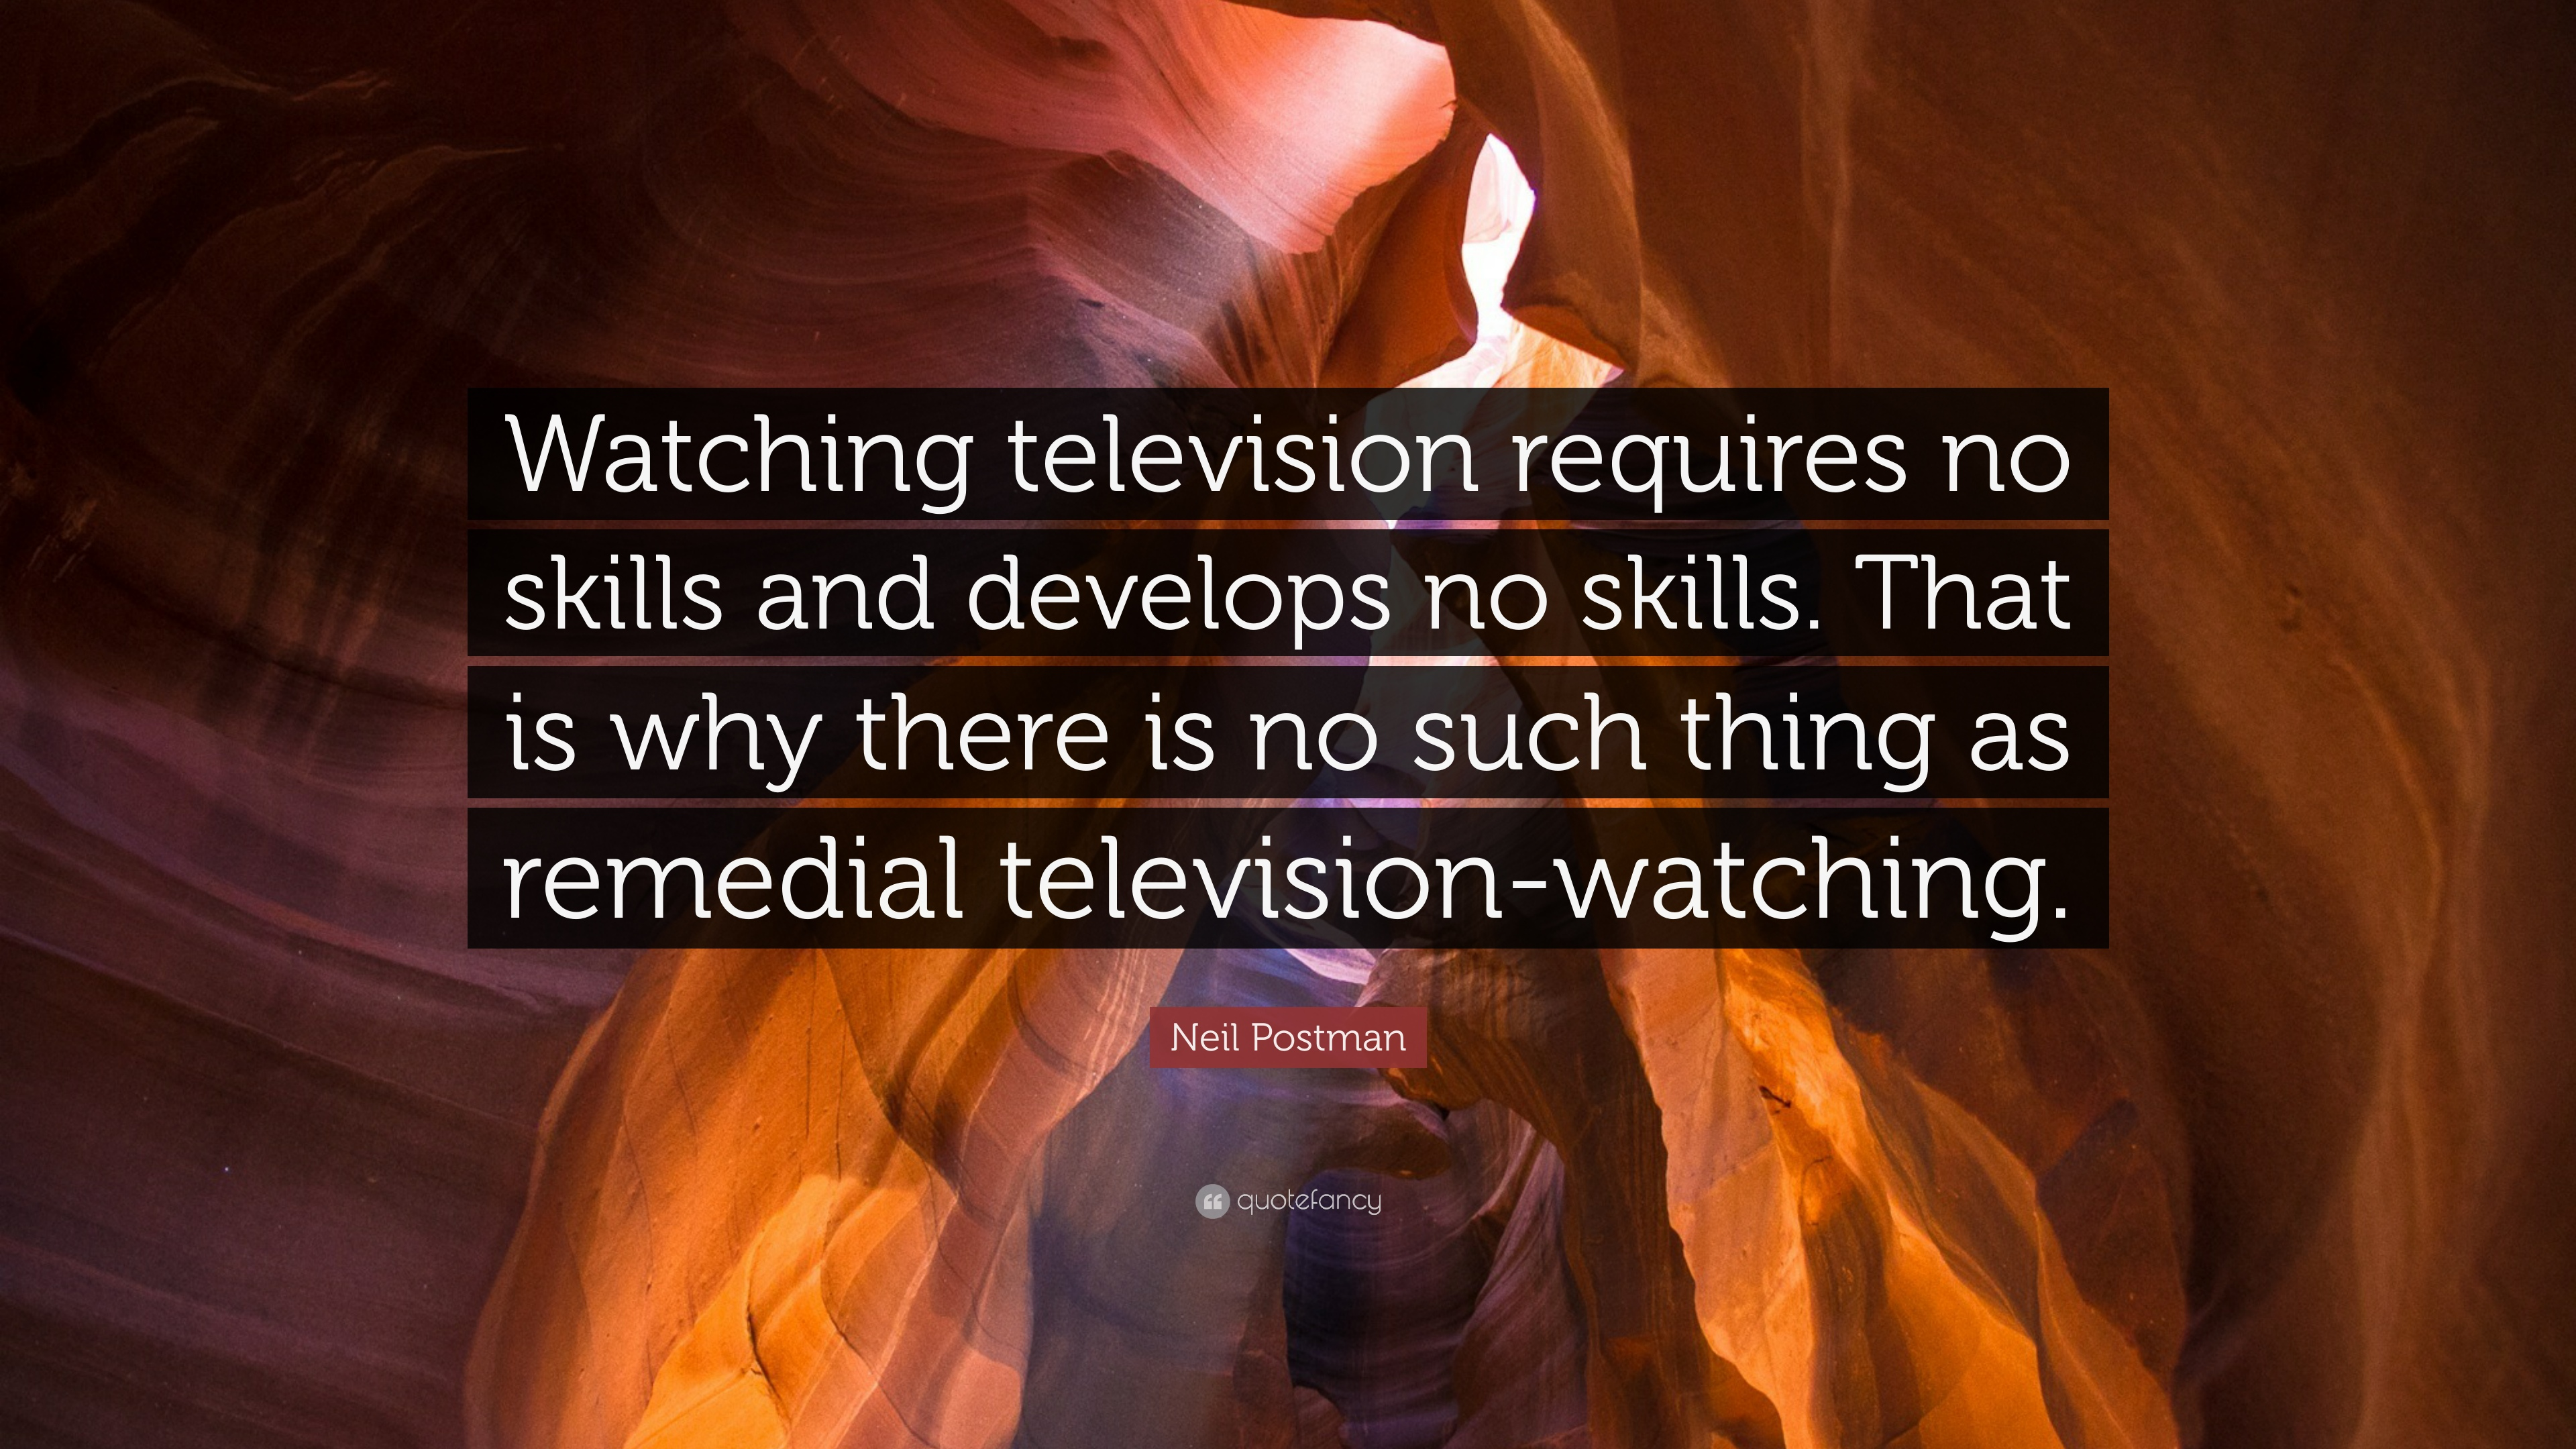 an analysis of religion on television as entertainment by neil postman Amusing ourselves to death by neil postman but as postman delves deeper into his analysis  i personally think postman's attitude towards television is a.